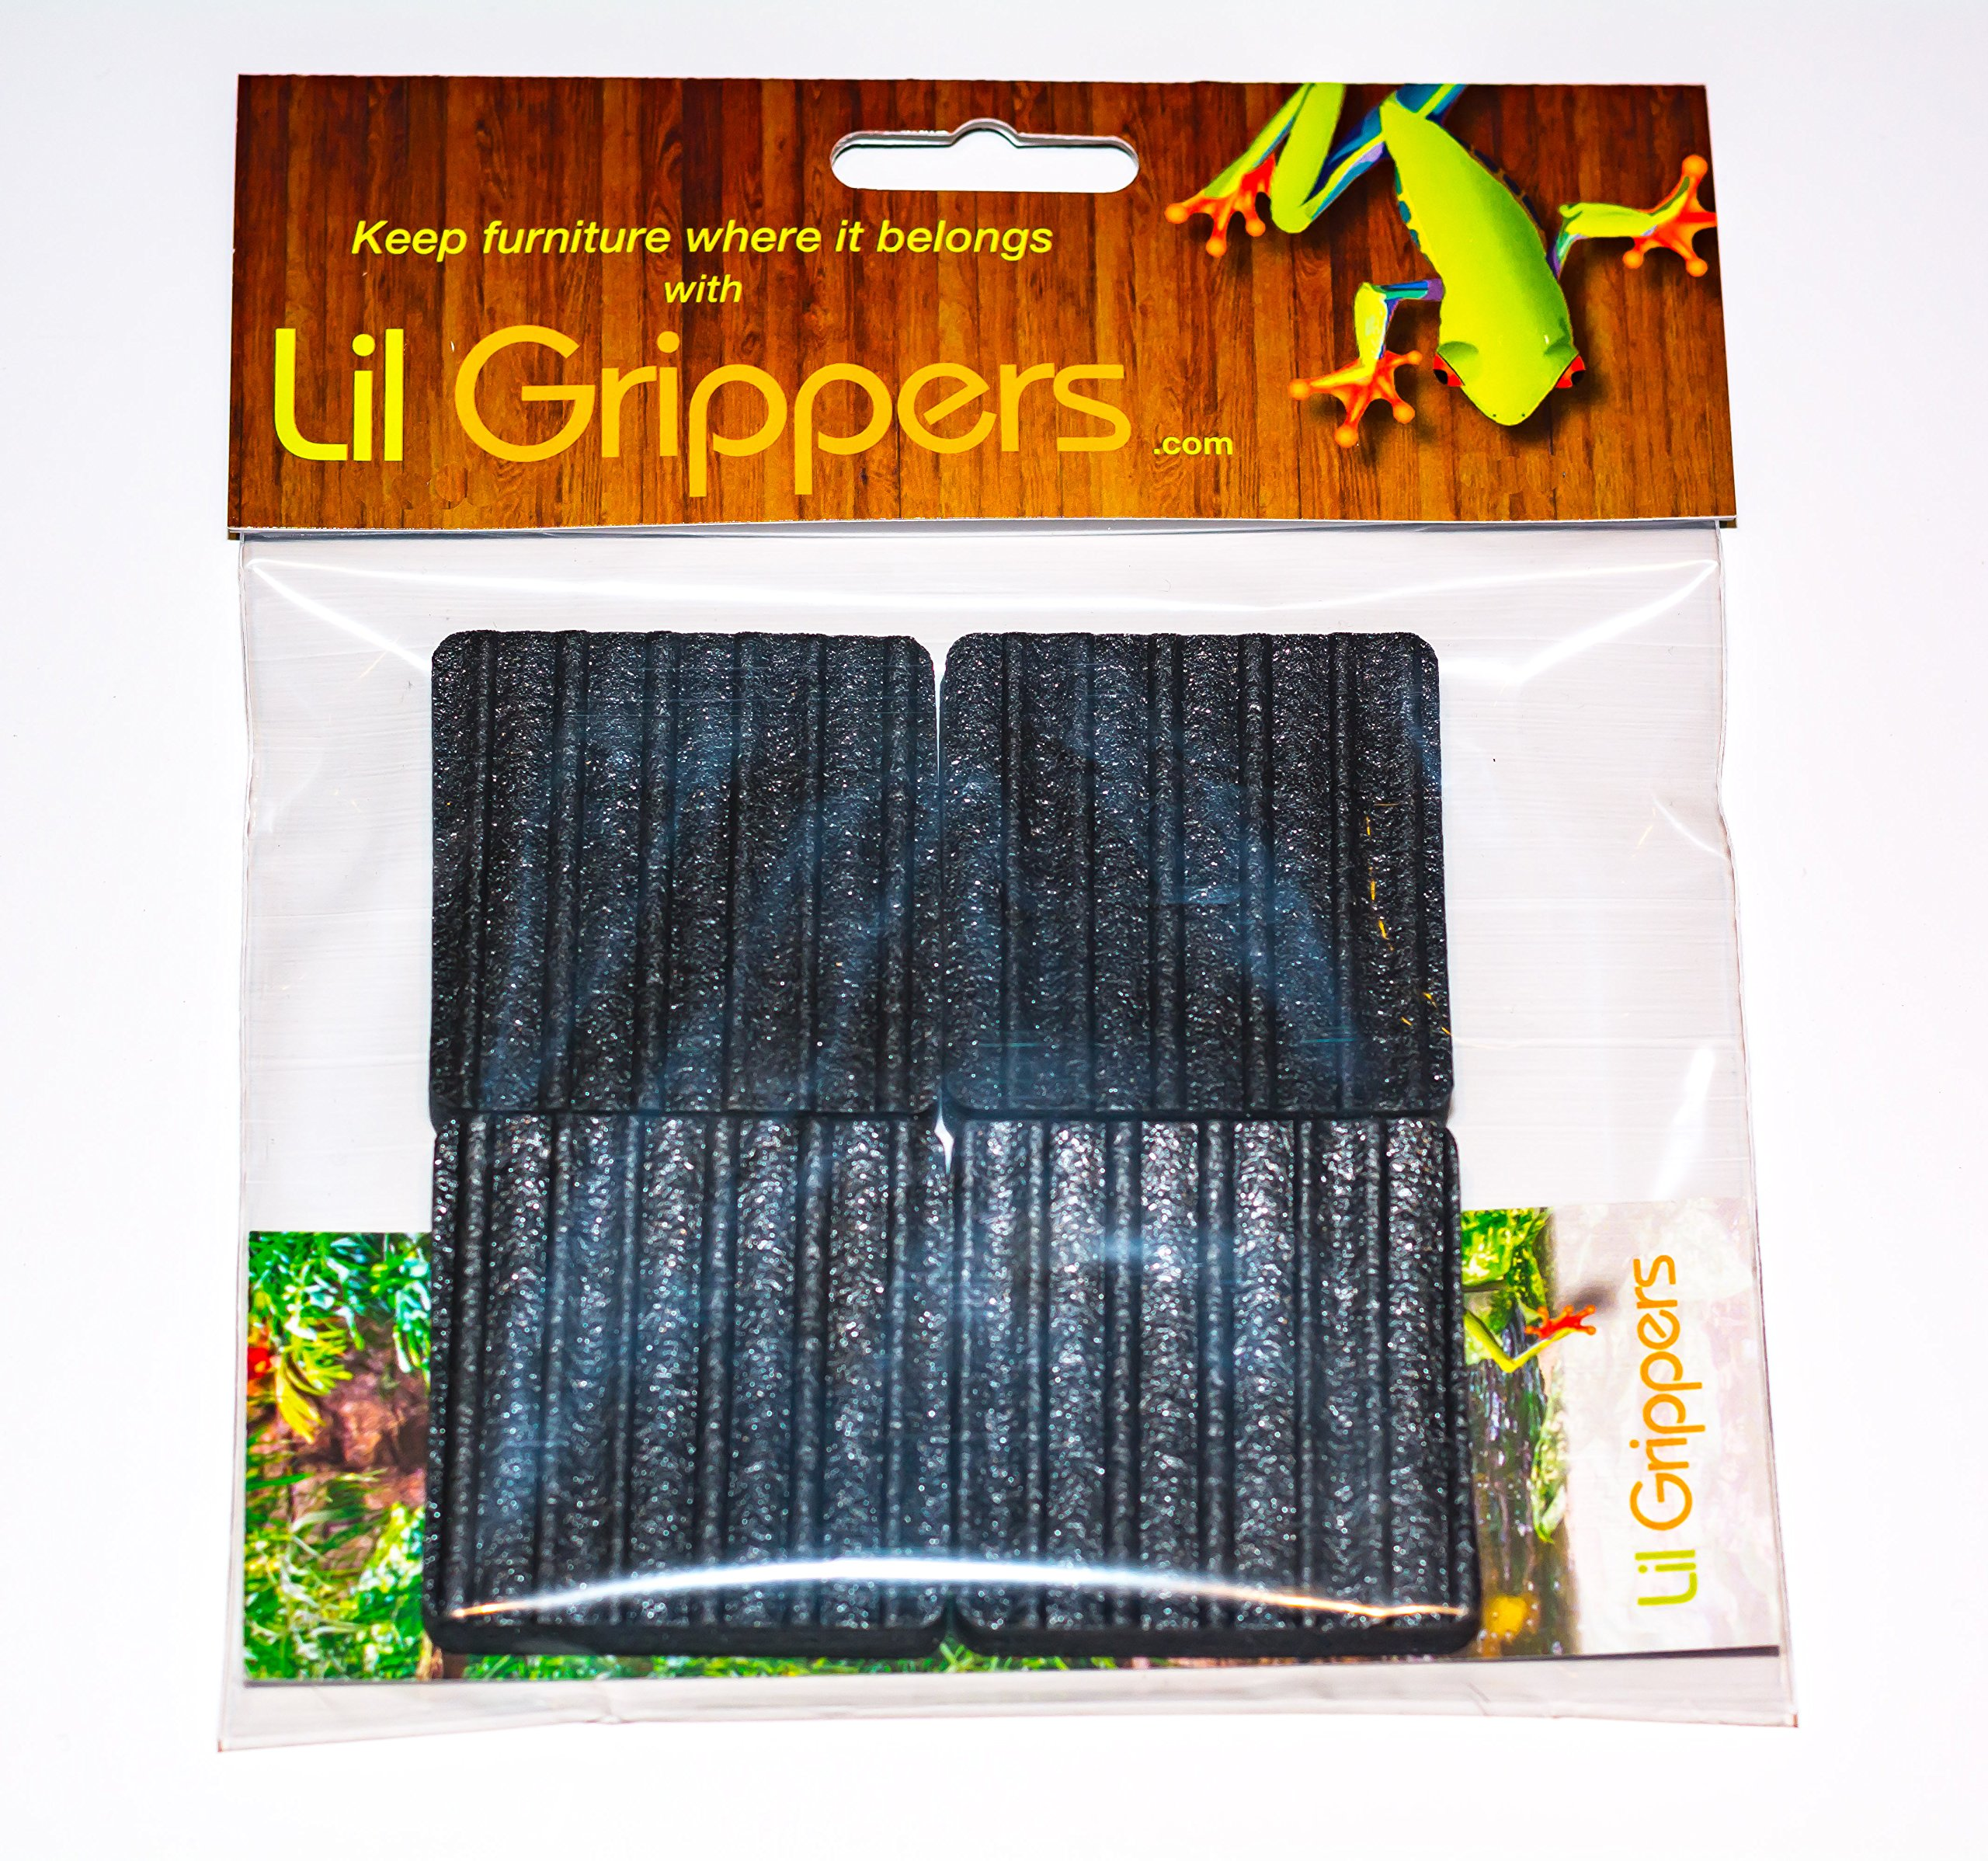 Lil Grippers Square Furniture Pads - Keep Furniture Where it Belongs! (5 Inch) 4 Pack